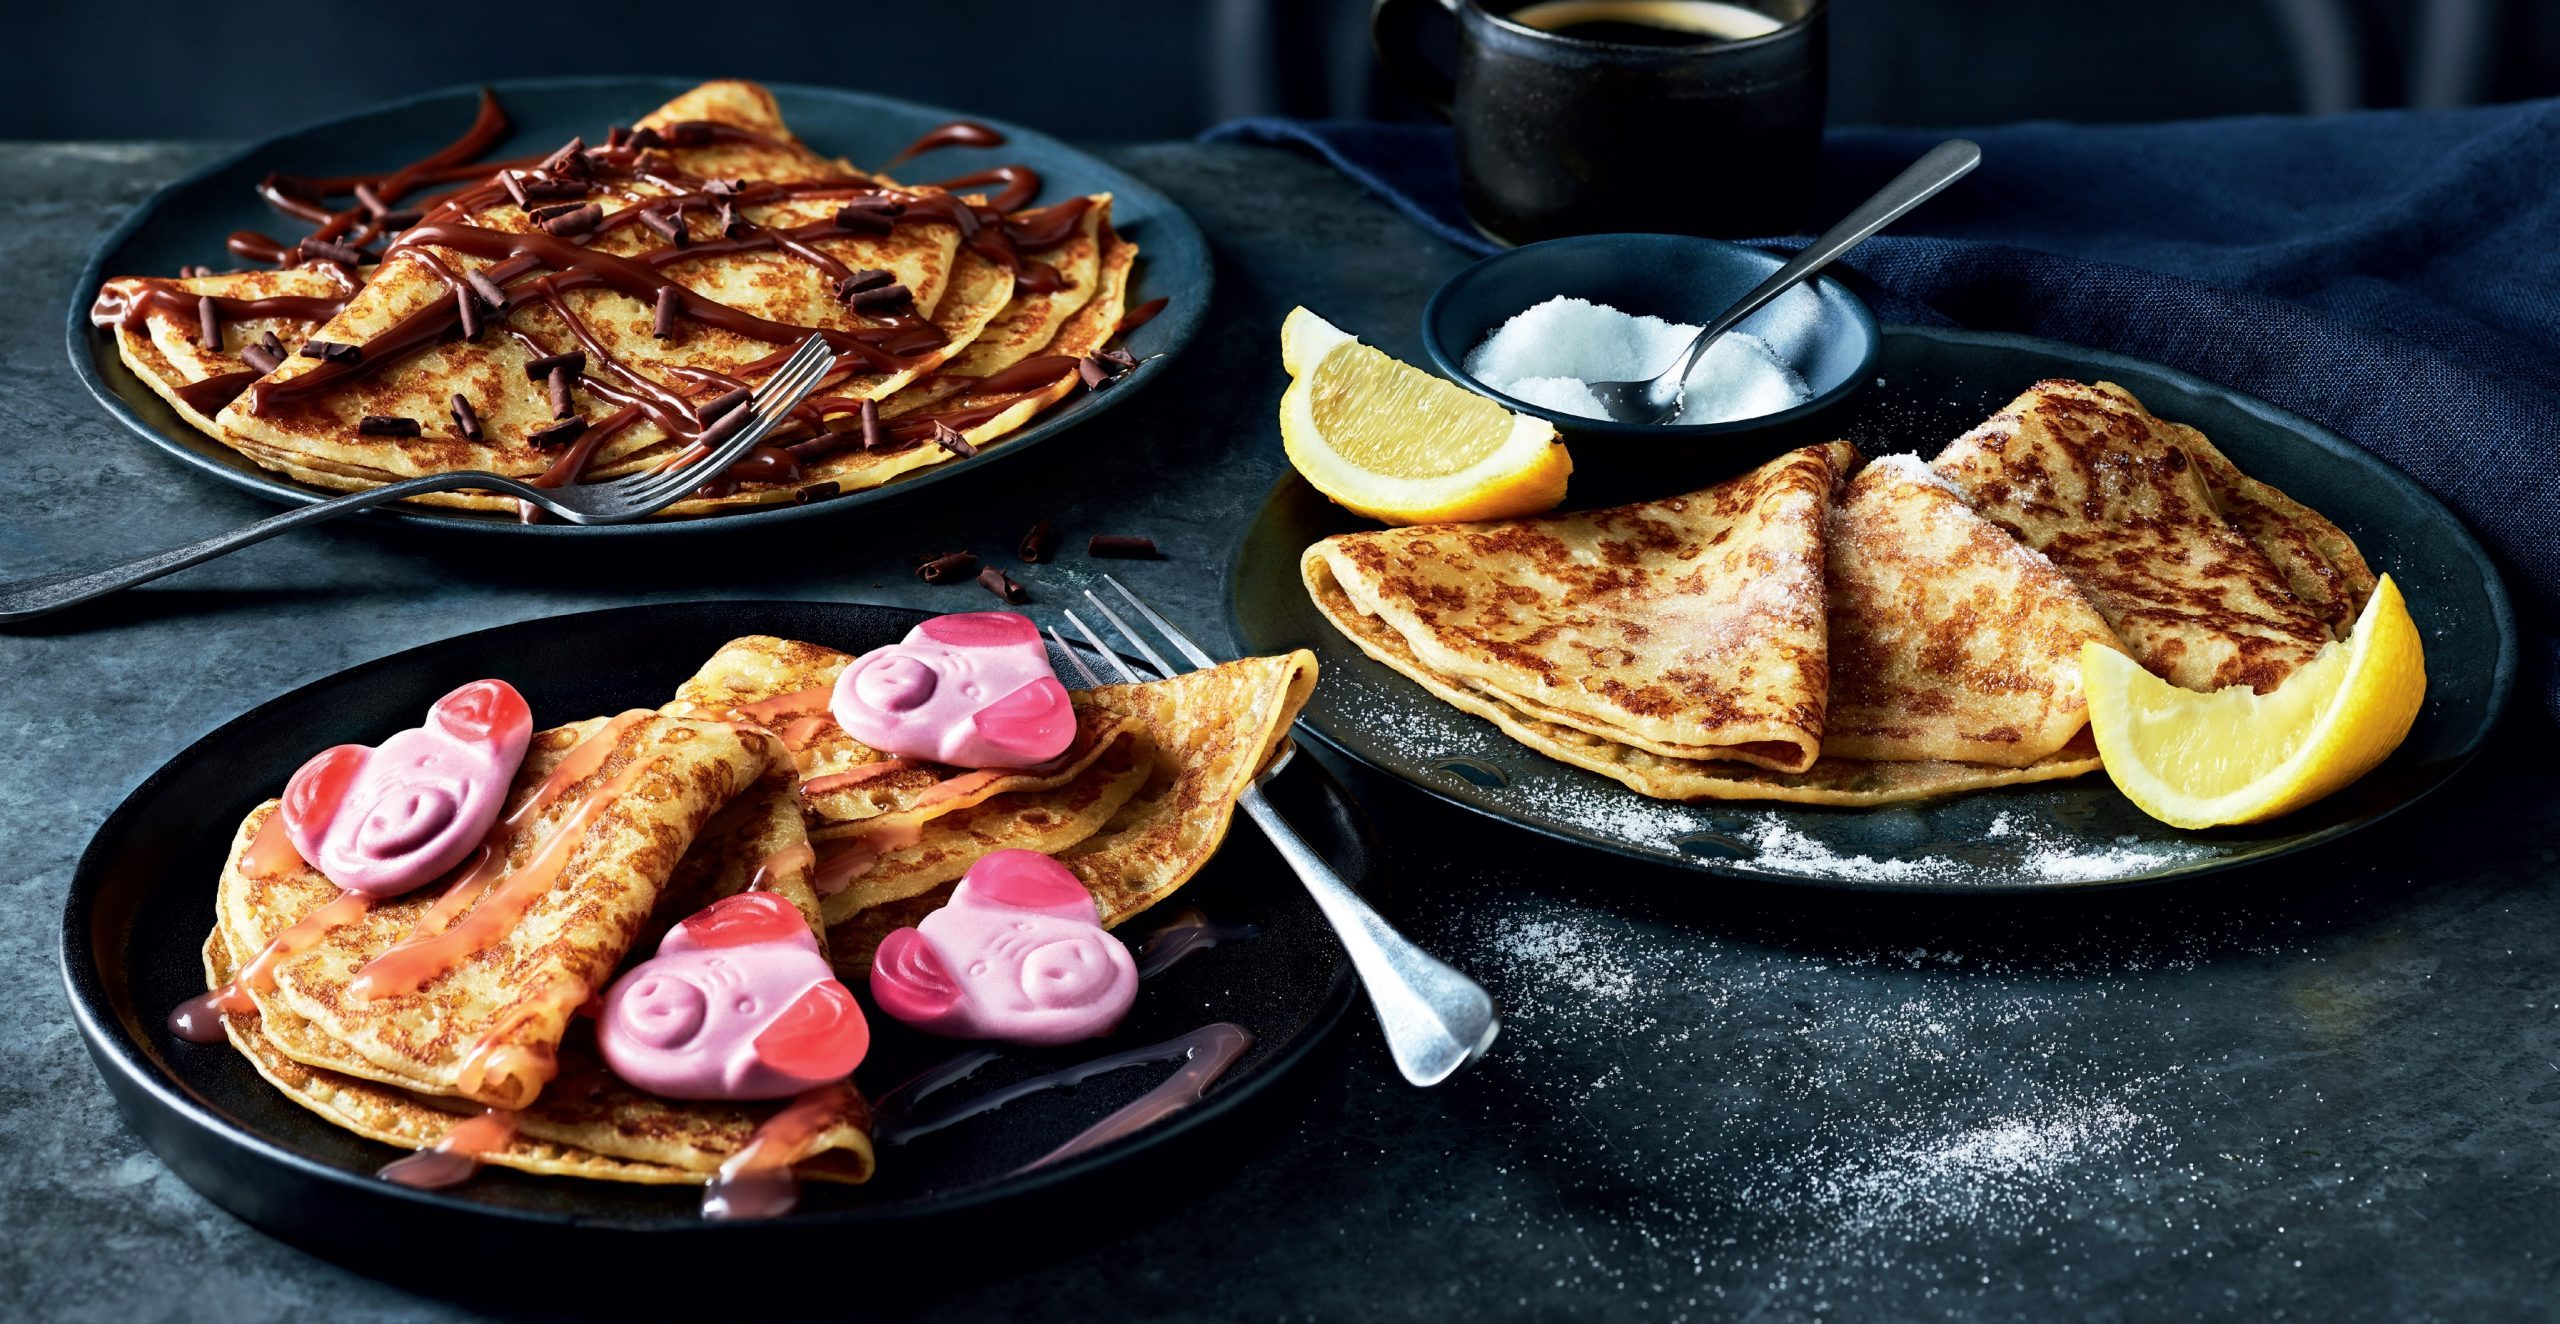 M&S introduces Percy Pig pancakes topped with sweets and dessert sauce for Shrove Tuesday